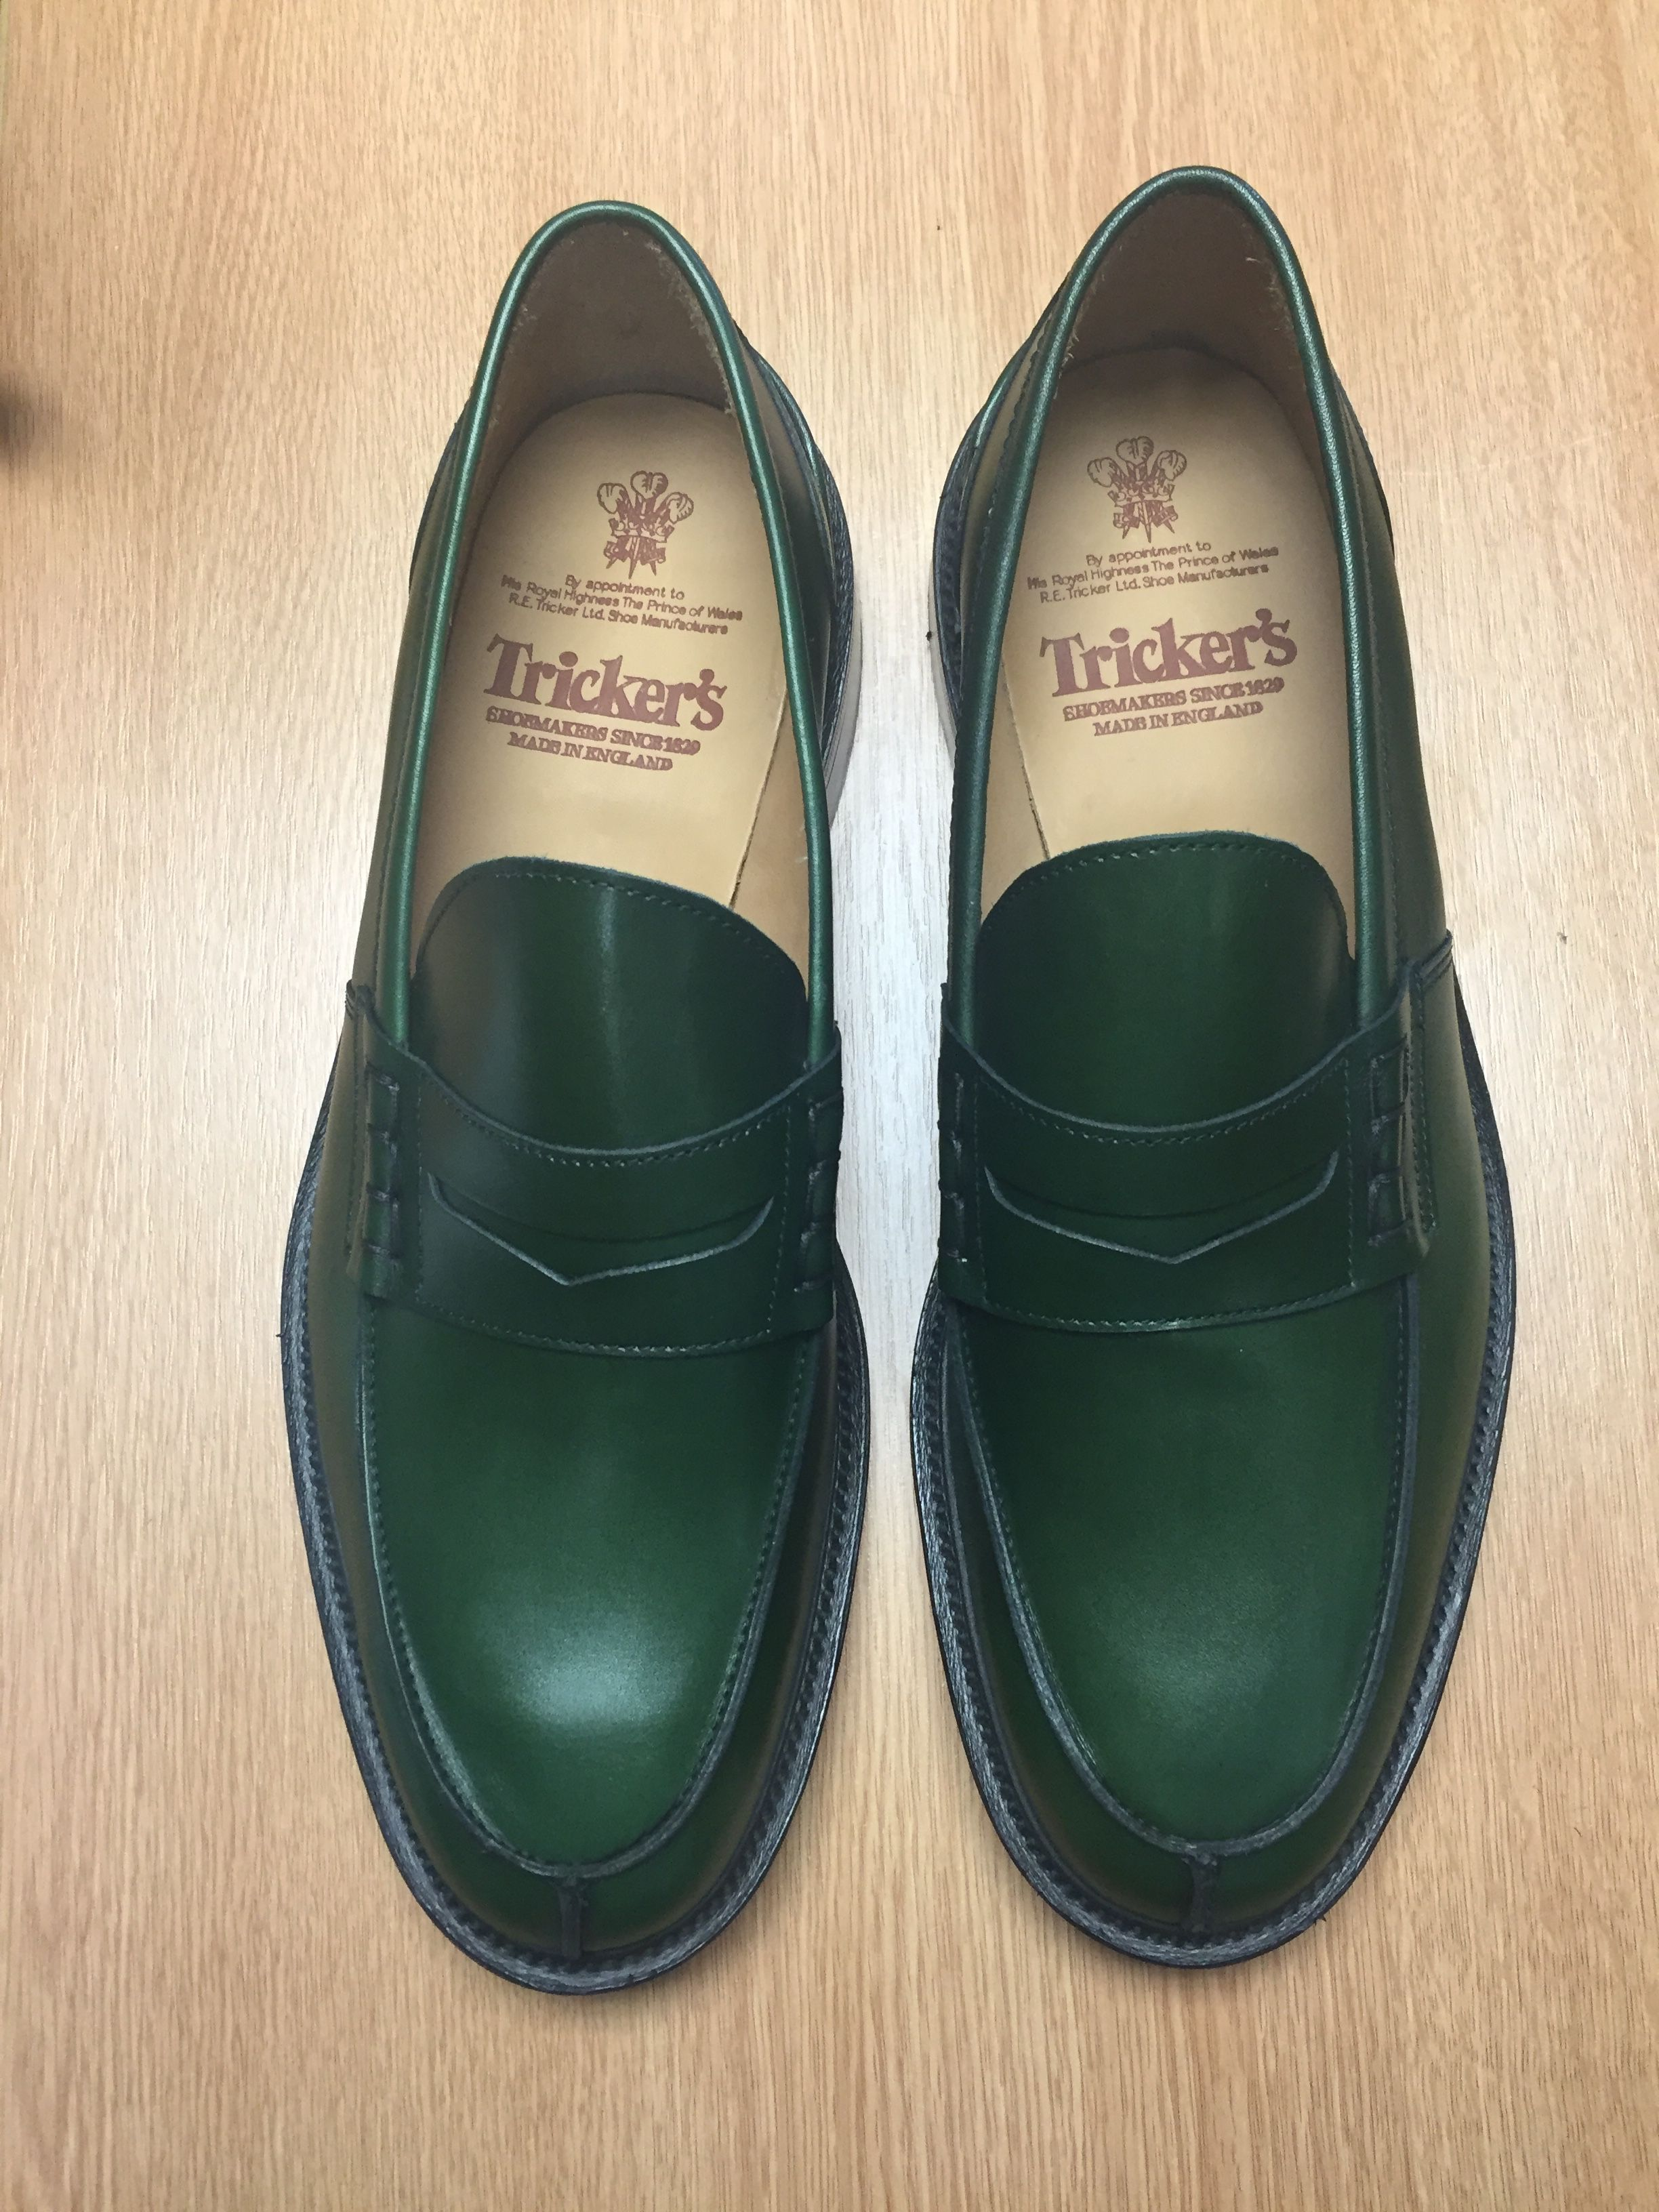 5b9de8724b3 Tricker s classic Penny loafer combines comfort with quiet confidence. In  Green Aniline with brown storm welt